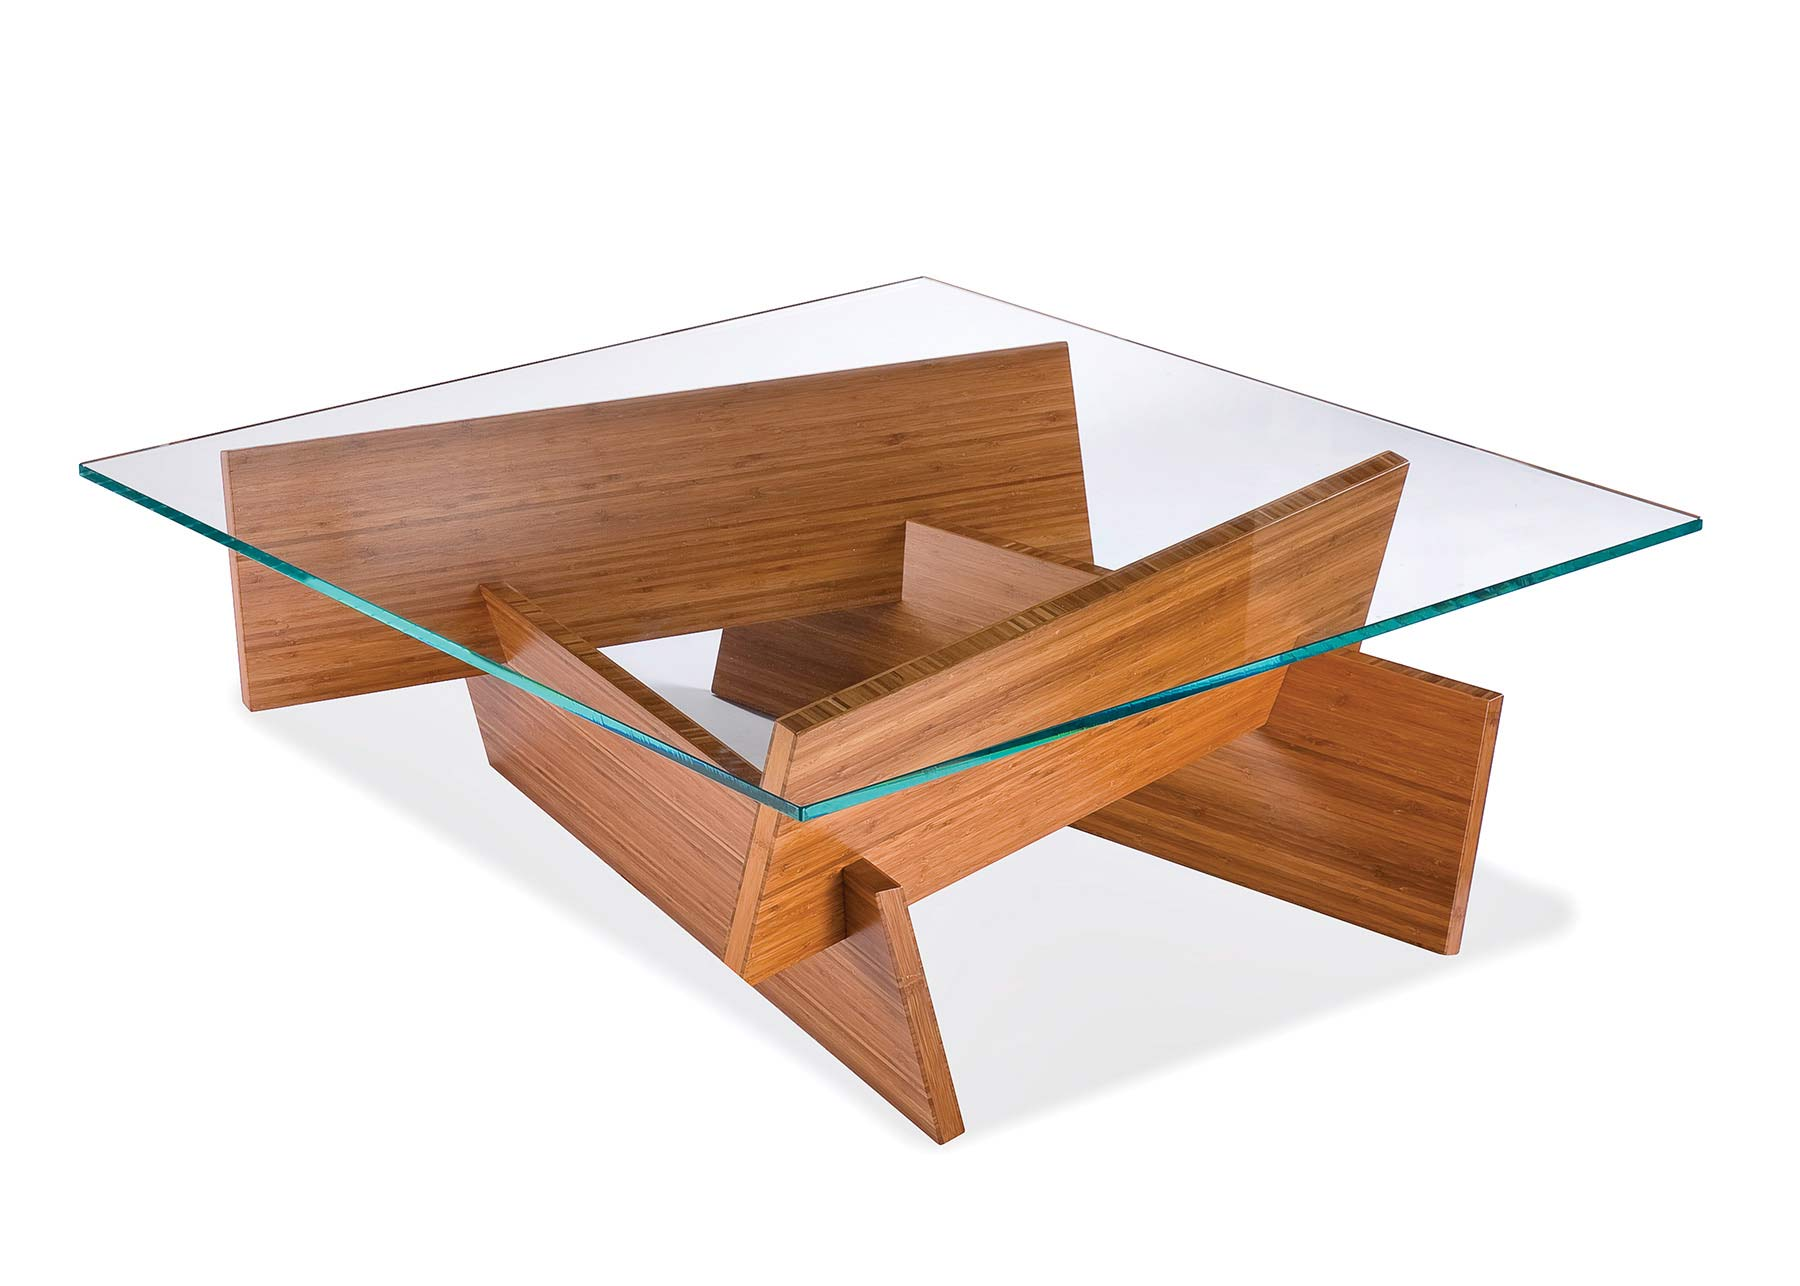 10 Ideas of Wooden Coffee Tables with Glass Top